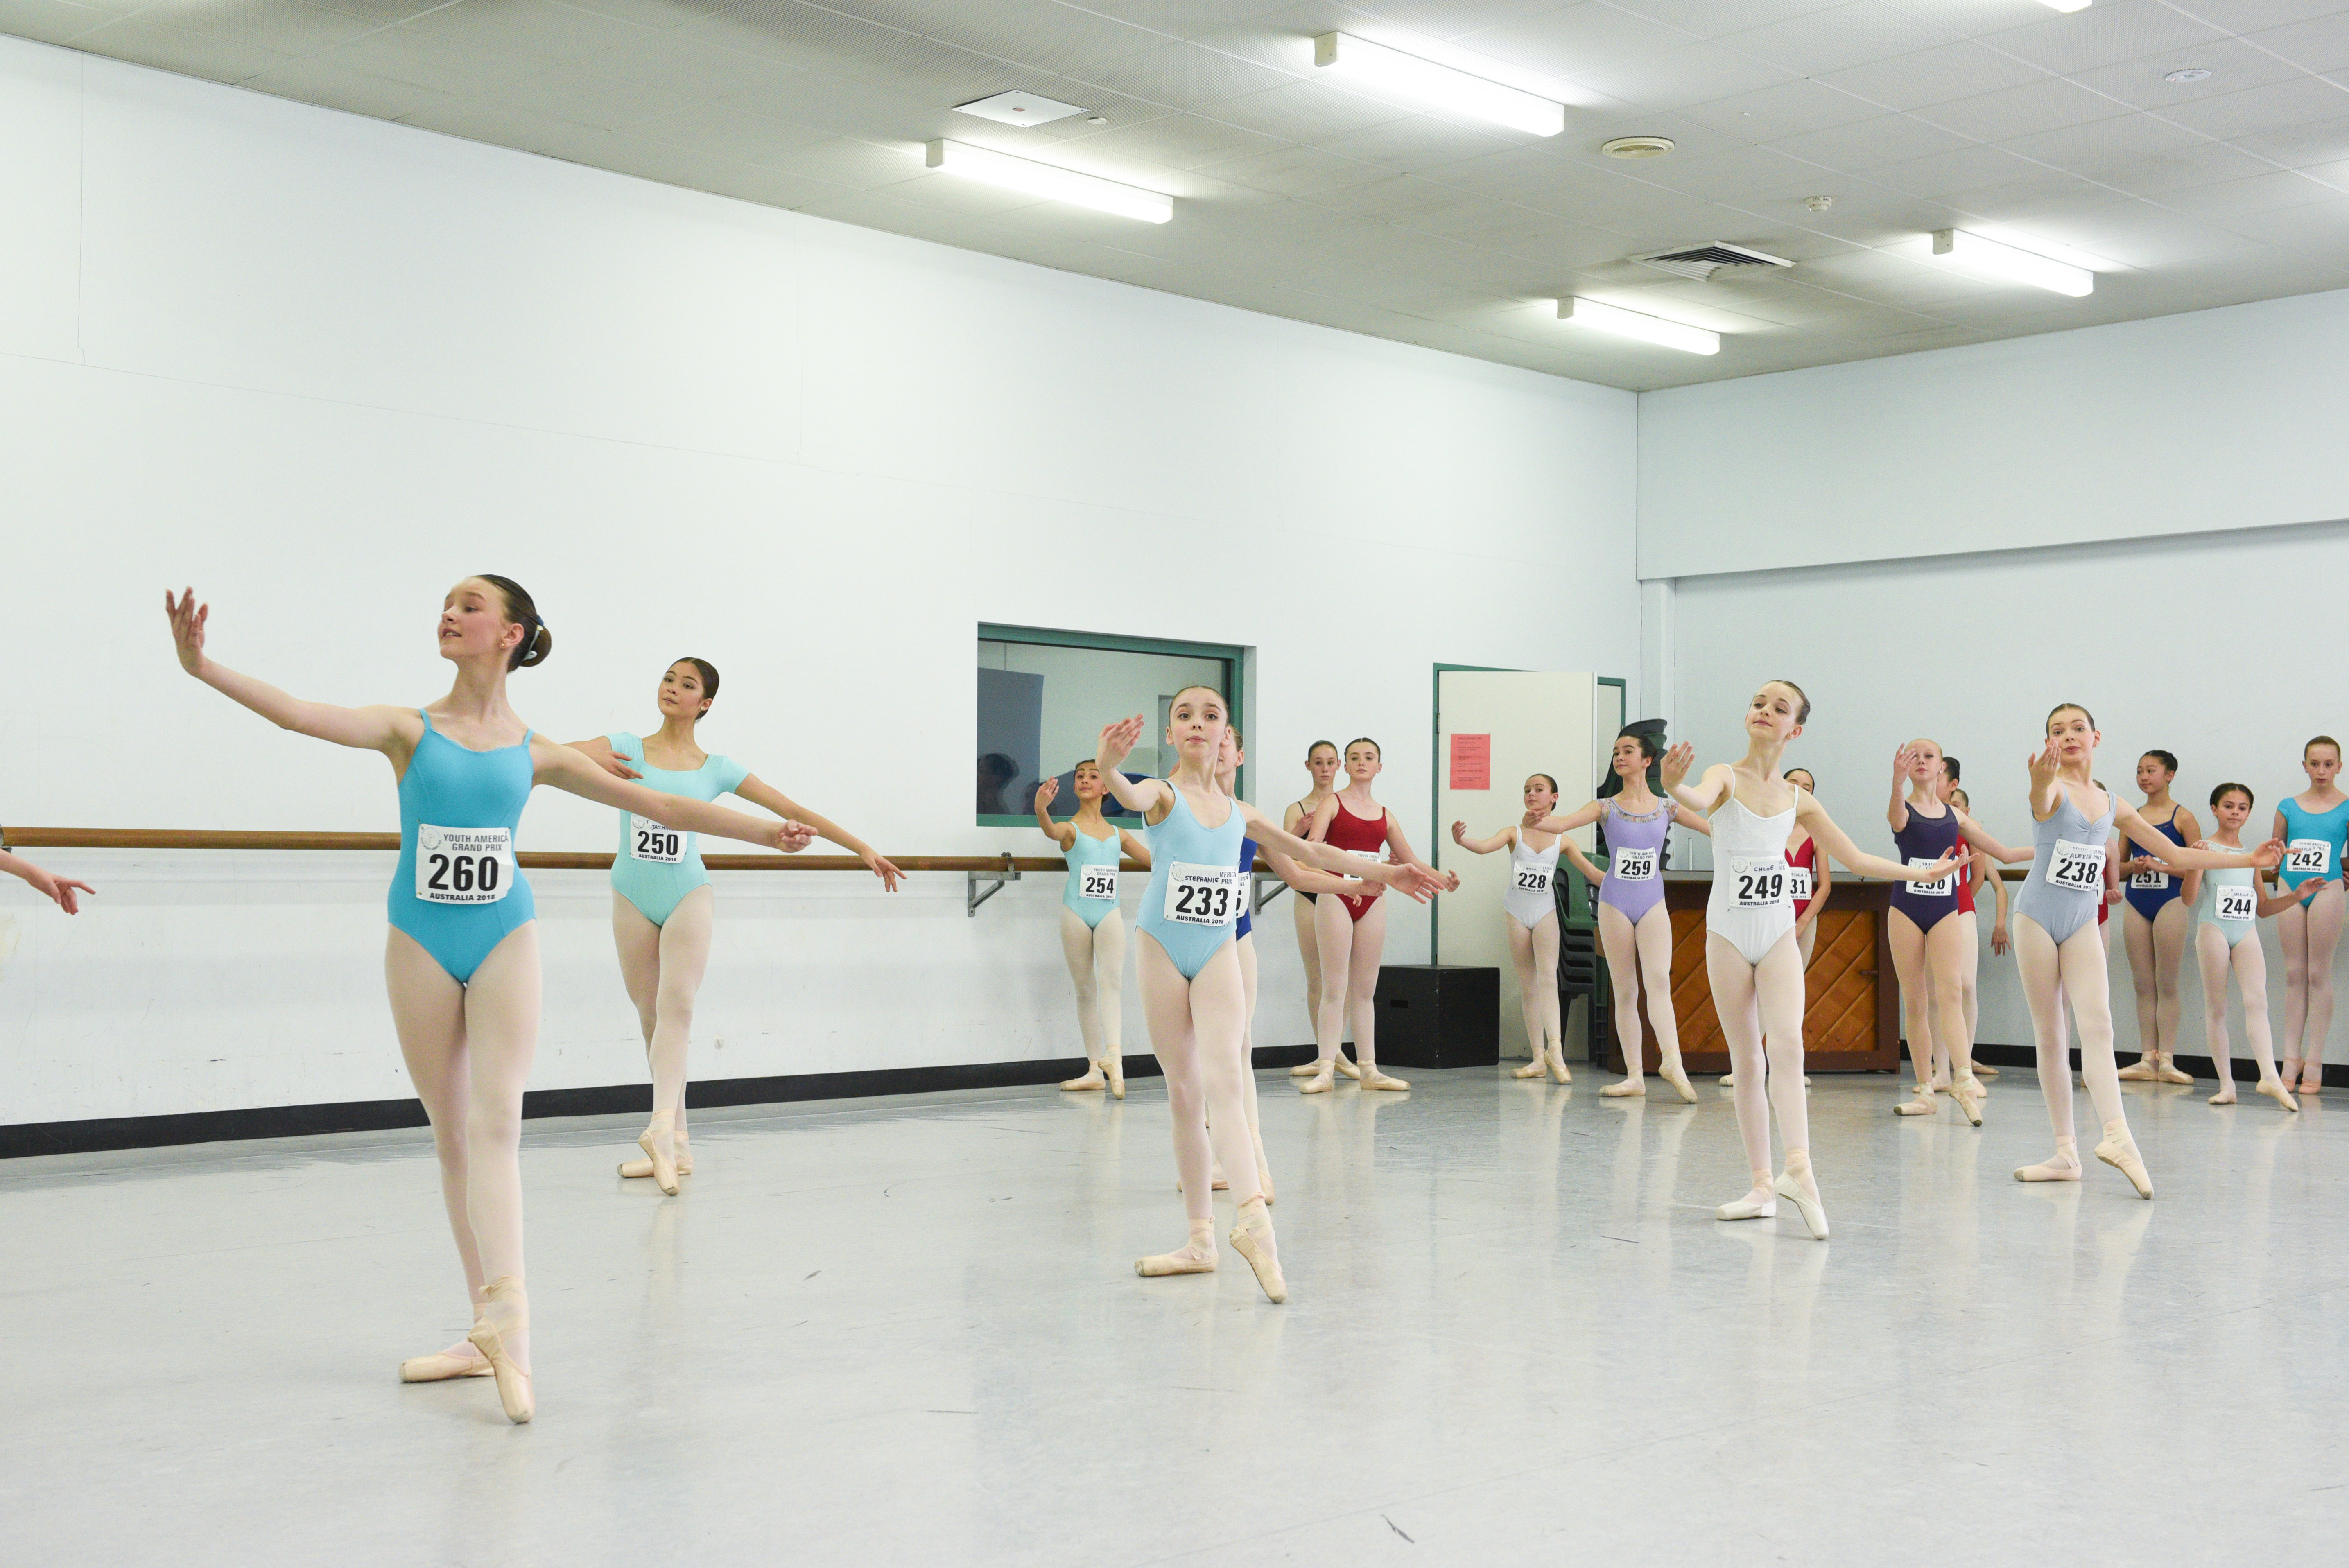 d3d058ee6c0b What Age Should Student Start Wearing Pointe Shoes  - Dance Magazine